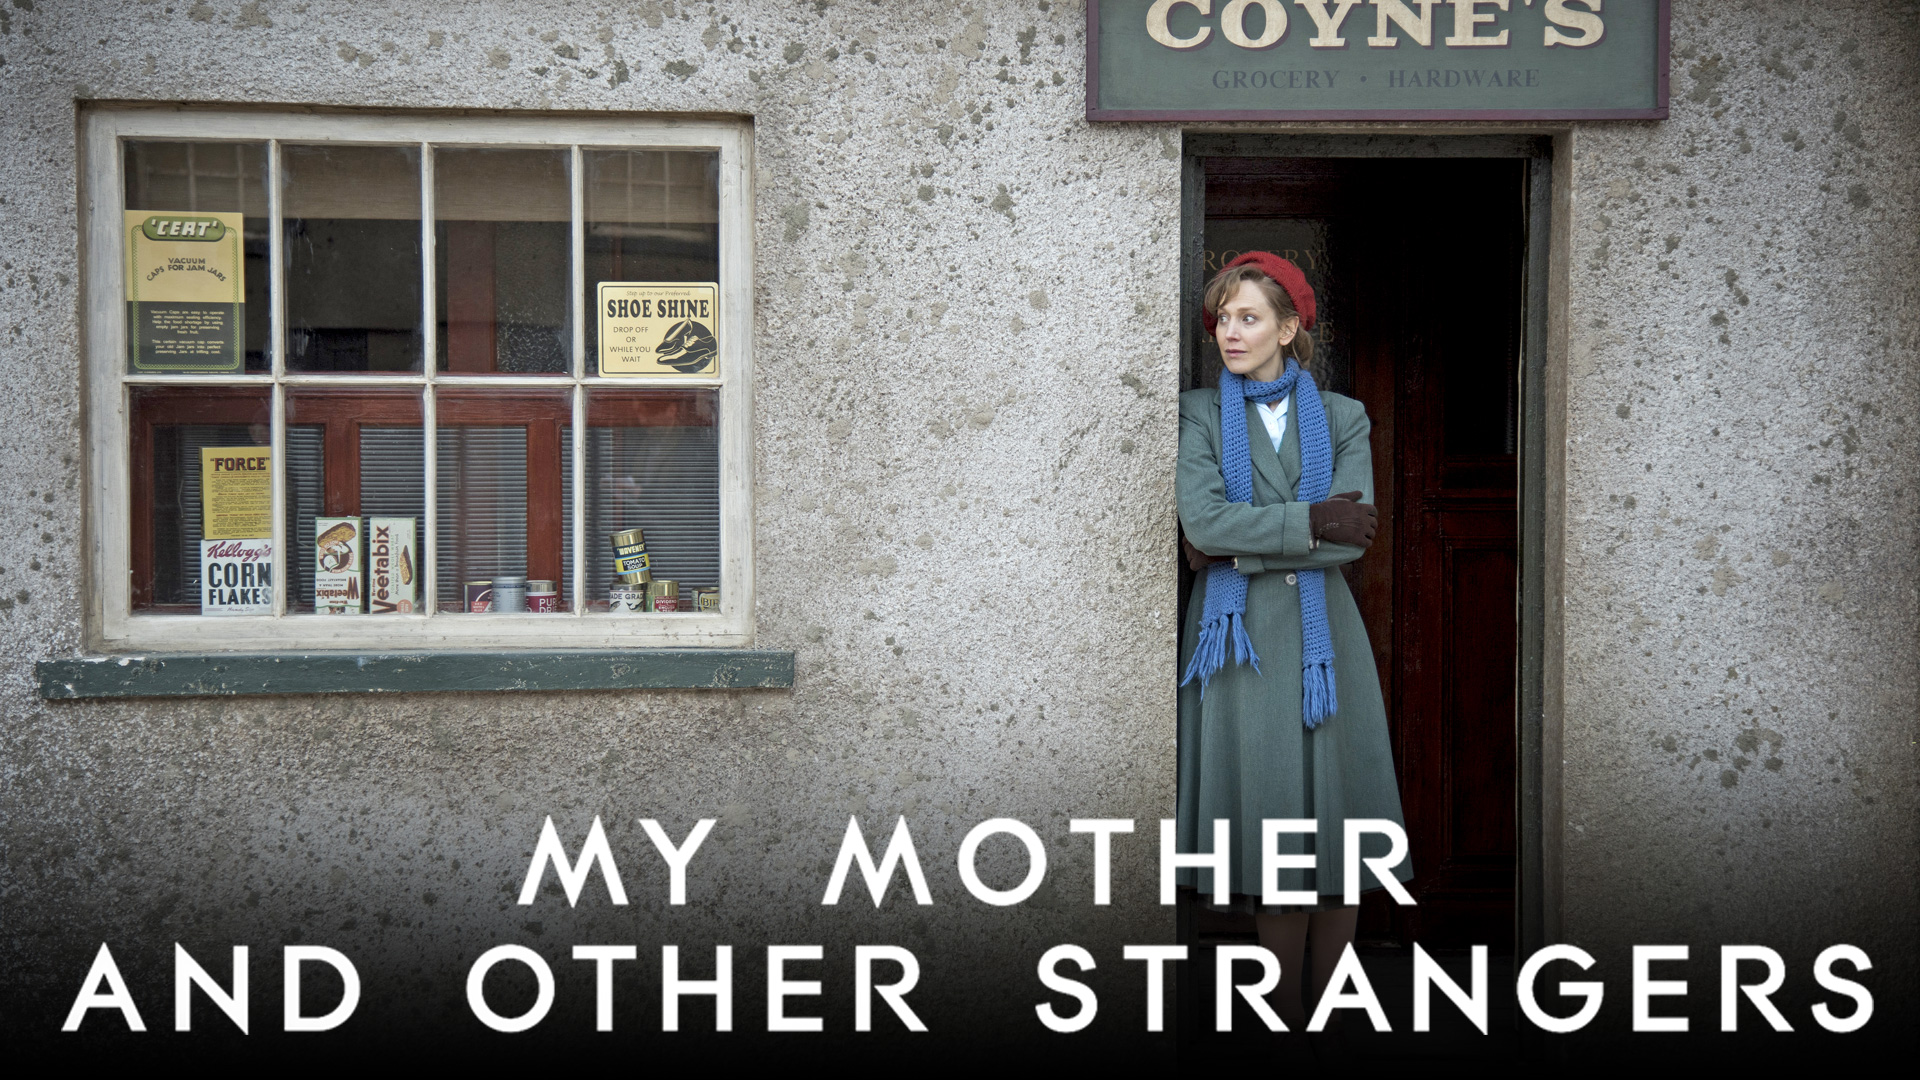 My Mother and Other Strangers:  8 p.m. Sundays  thru July 16